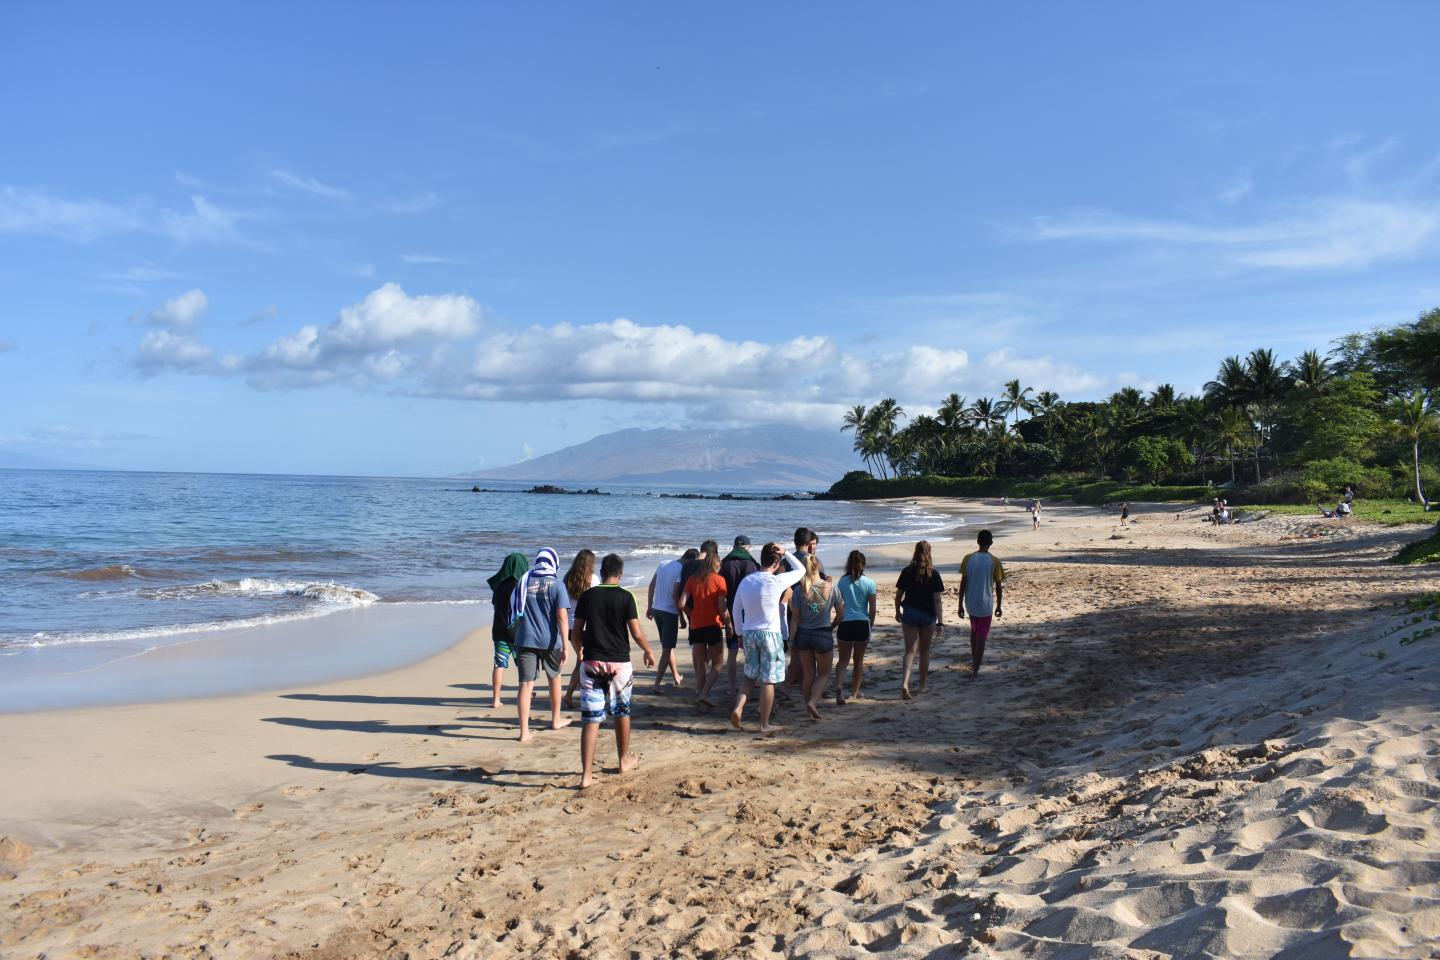 Teens walk along the beach during their travel tour of Hawaii and Australia.